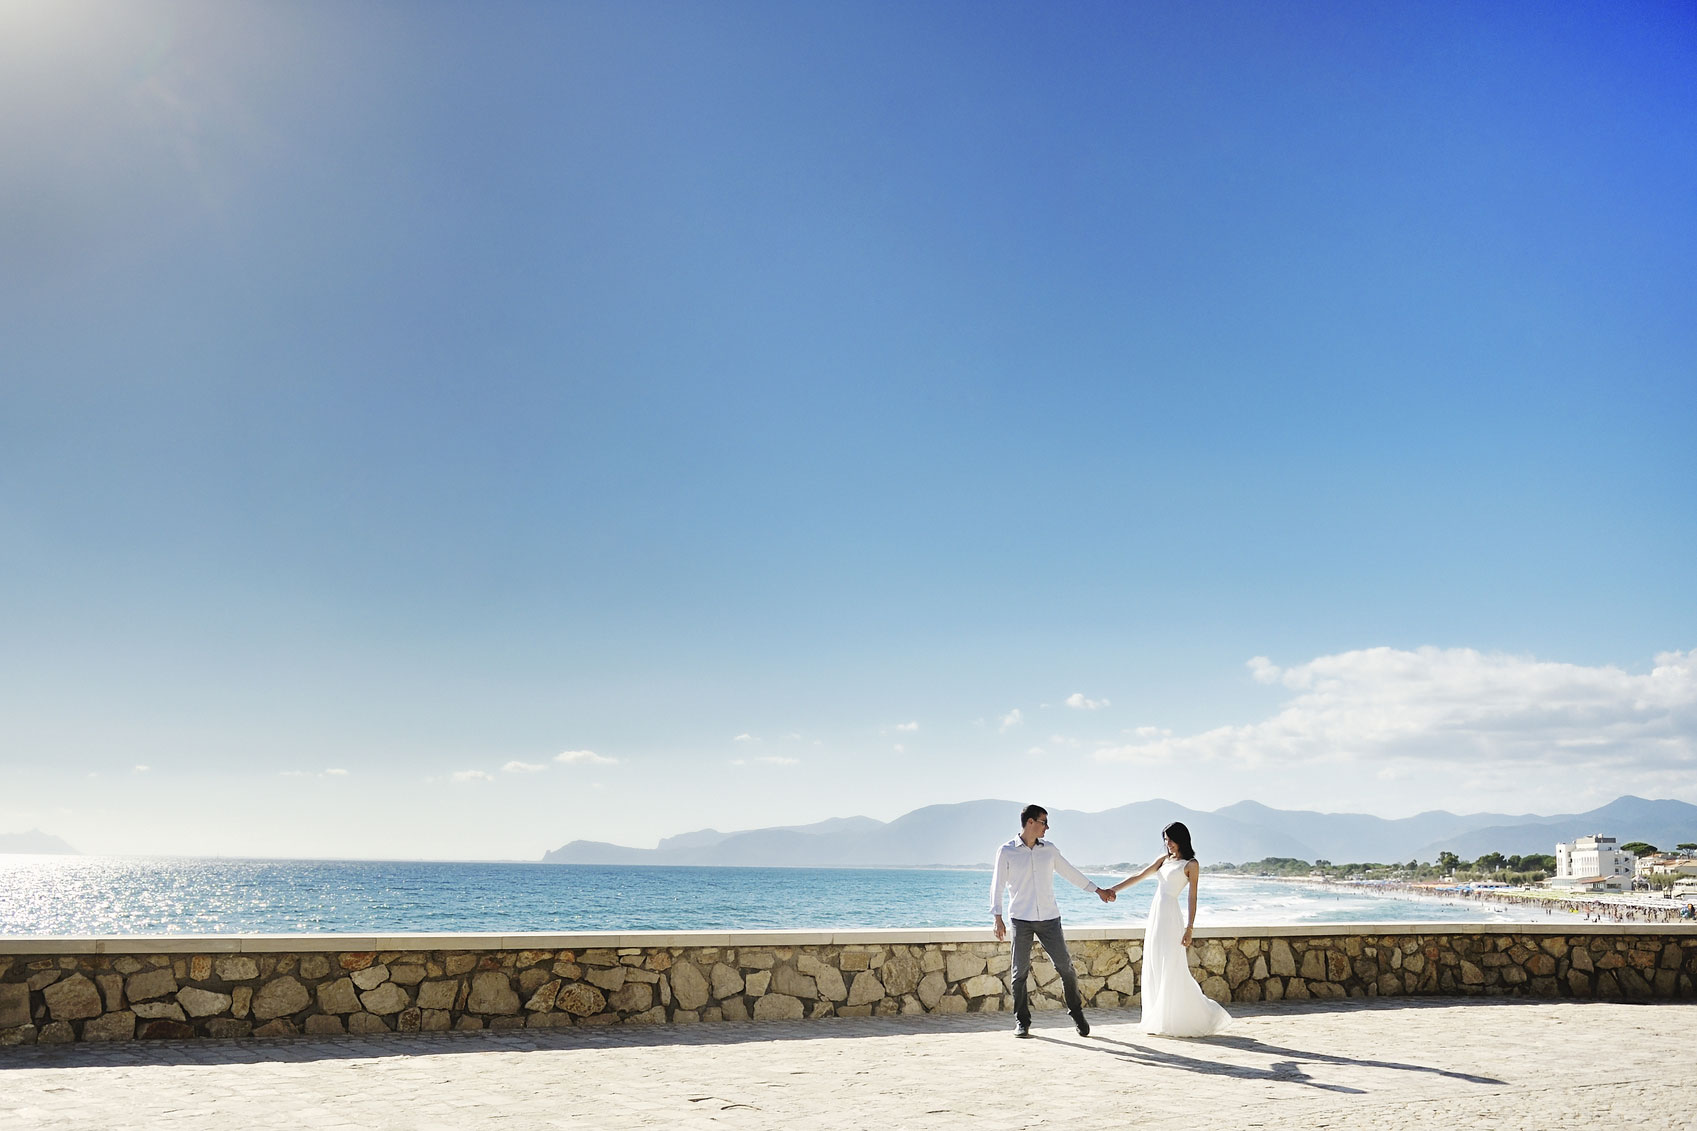 bride-and-groom-holding-hands-in-Sperlonga,-Italy-000084160067_Medium.jpg